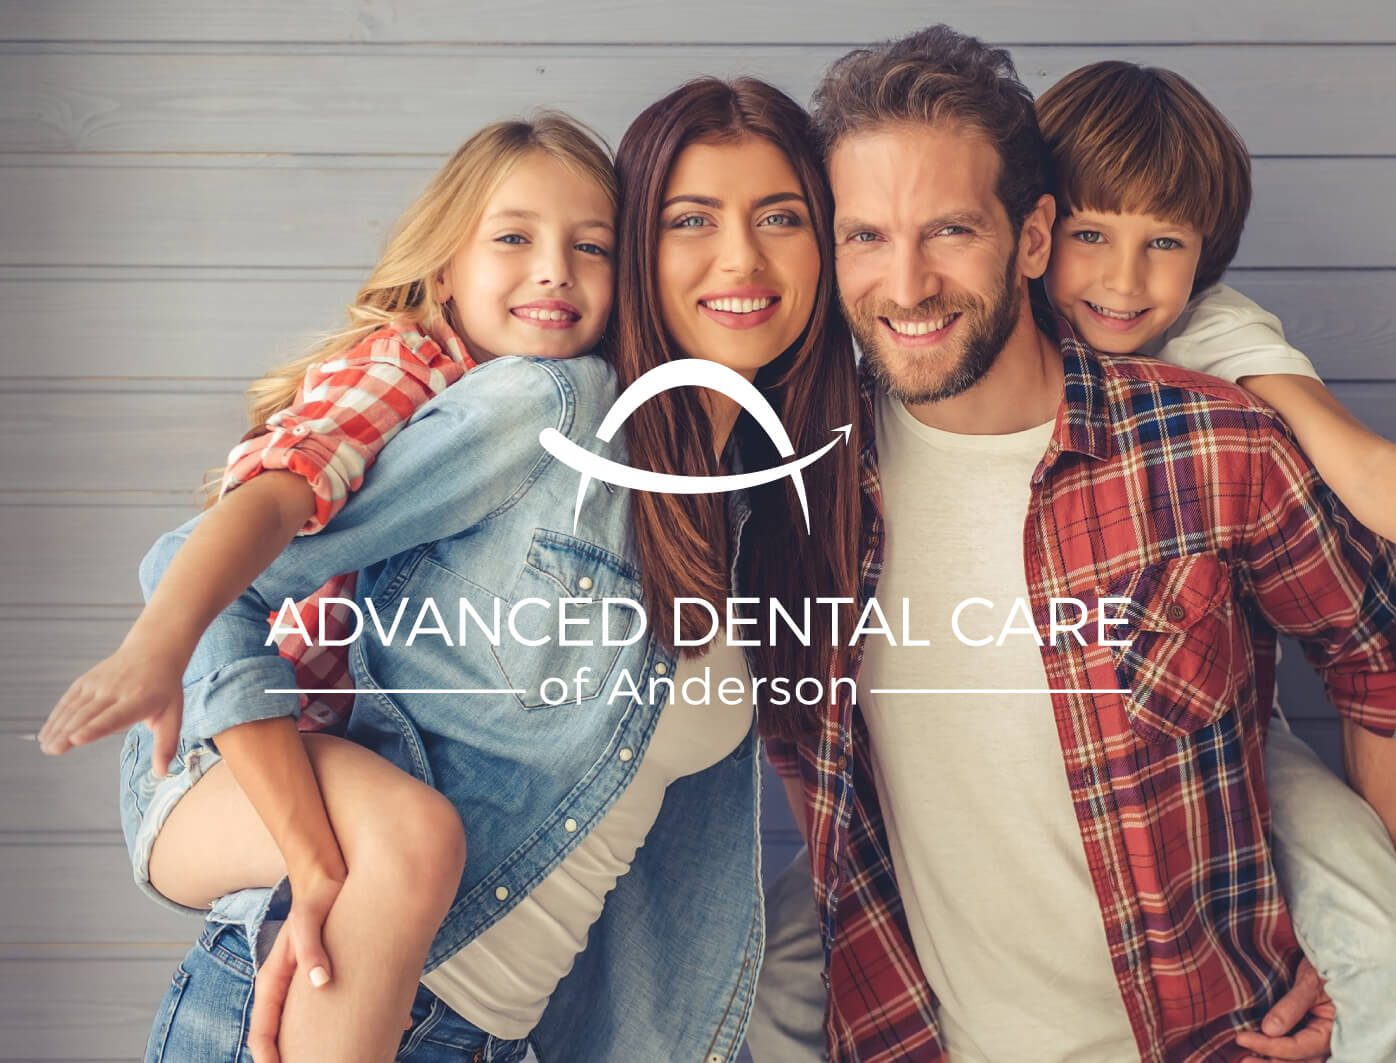 charley grey web design client advanced dental care of anderson